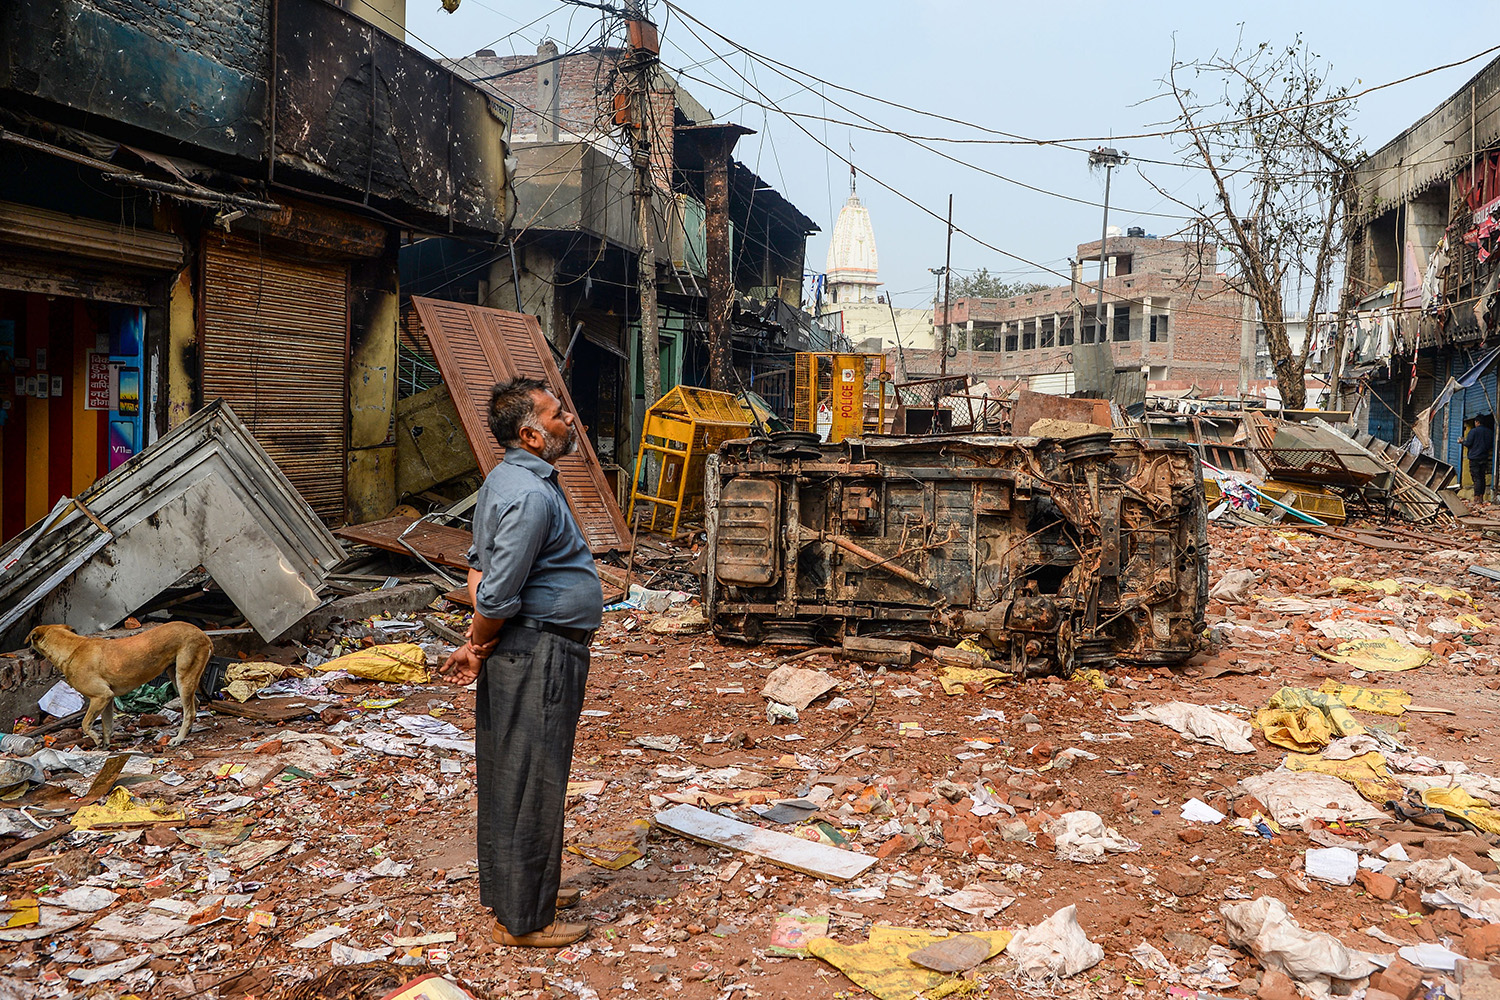 A resident looks at burnt-out and damaged residential premises and shops following clashes between people supporting and opposing a contentious amendment to India's citizenship law in New Delhi on Feb. 26. SAJJAD HUSSAIN/AFP via Getty Images